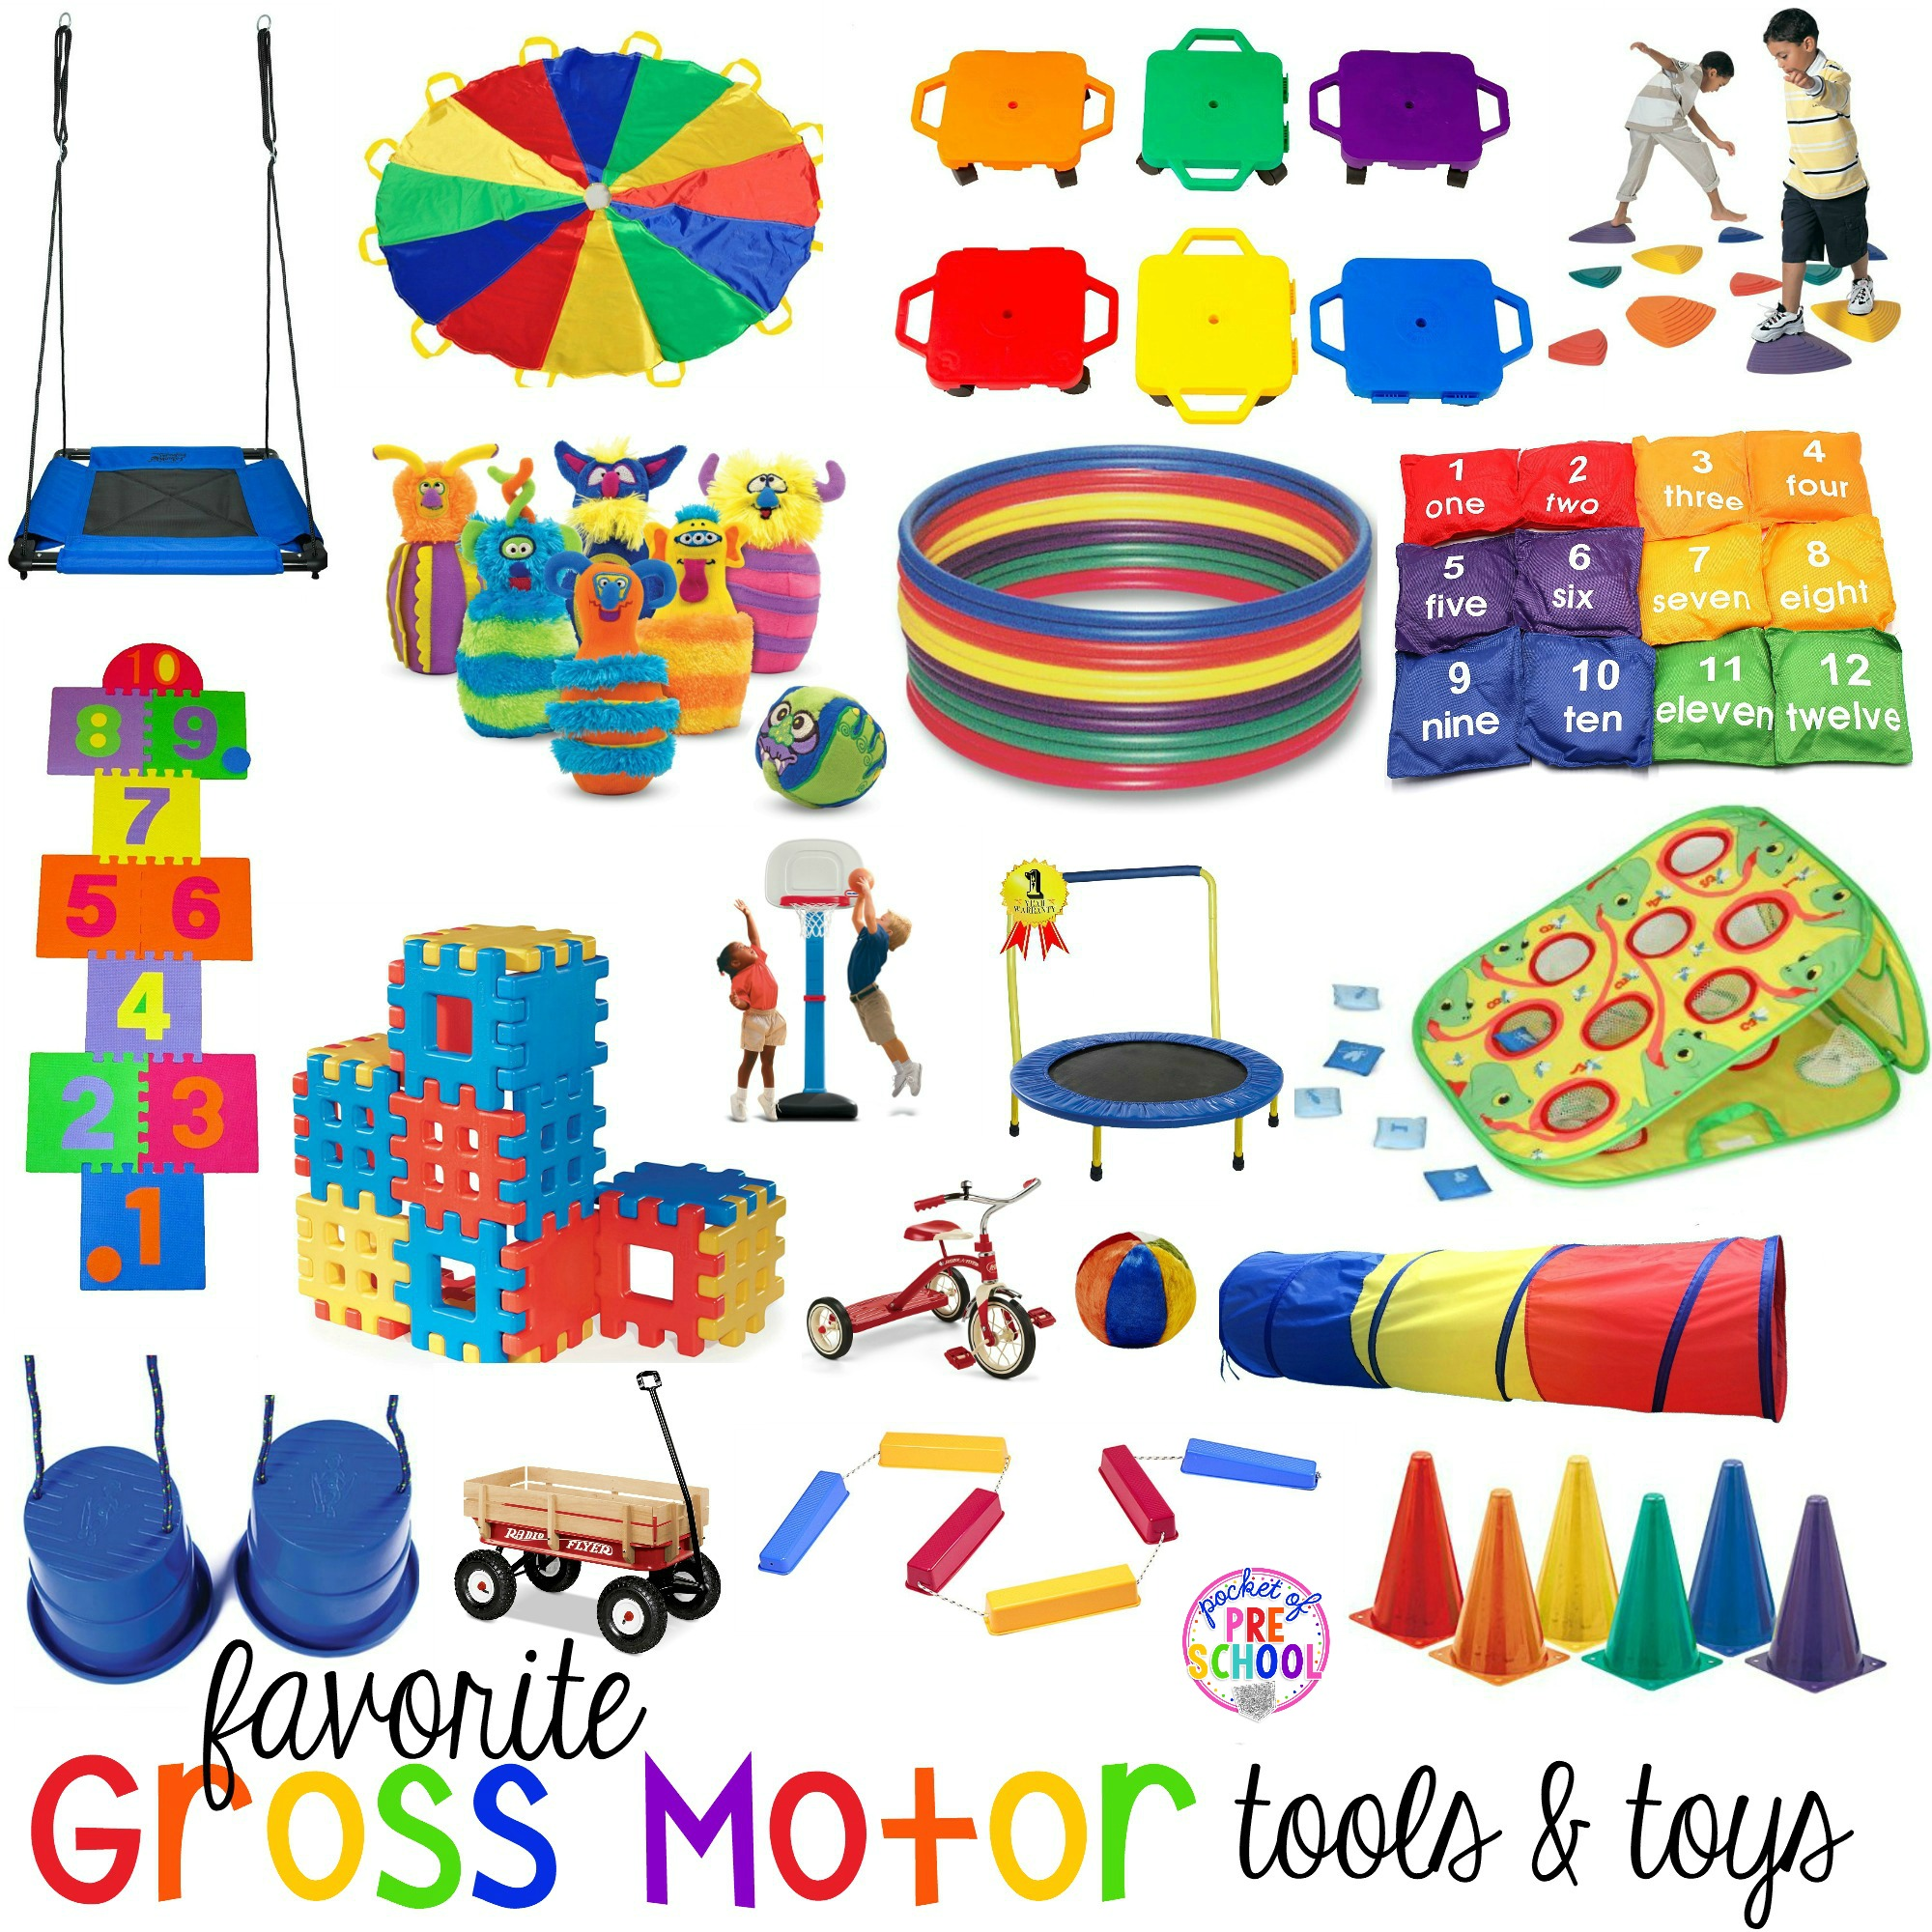 gross motor toys and tools for indoor and outdoor recess for